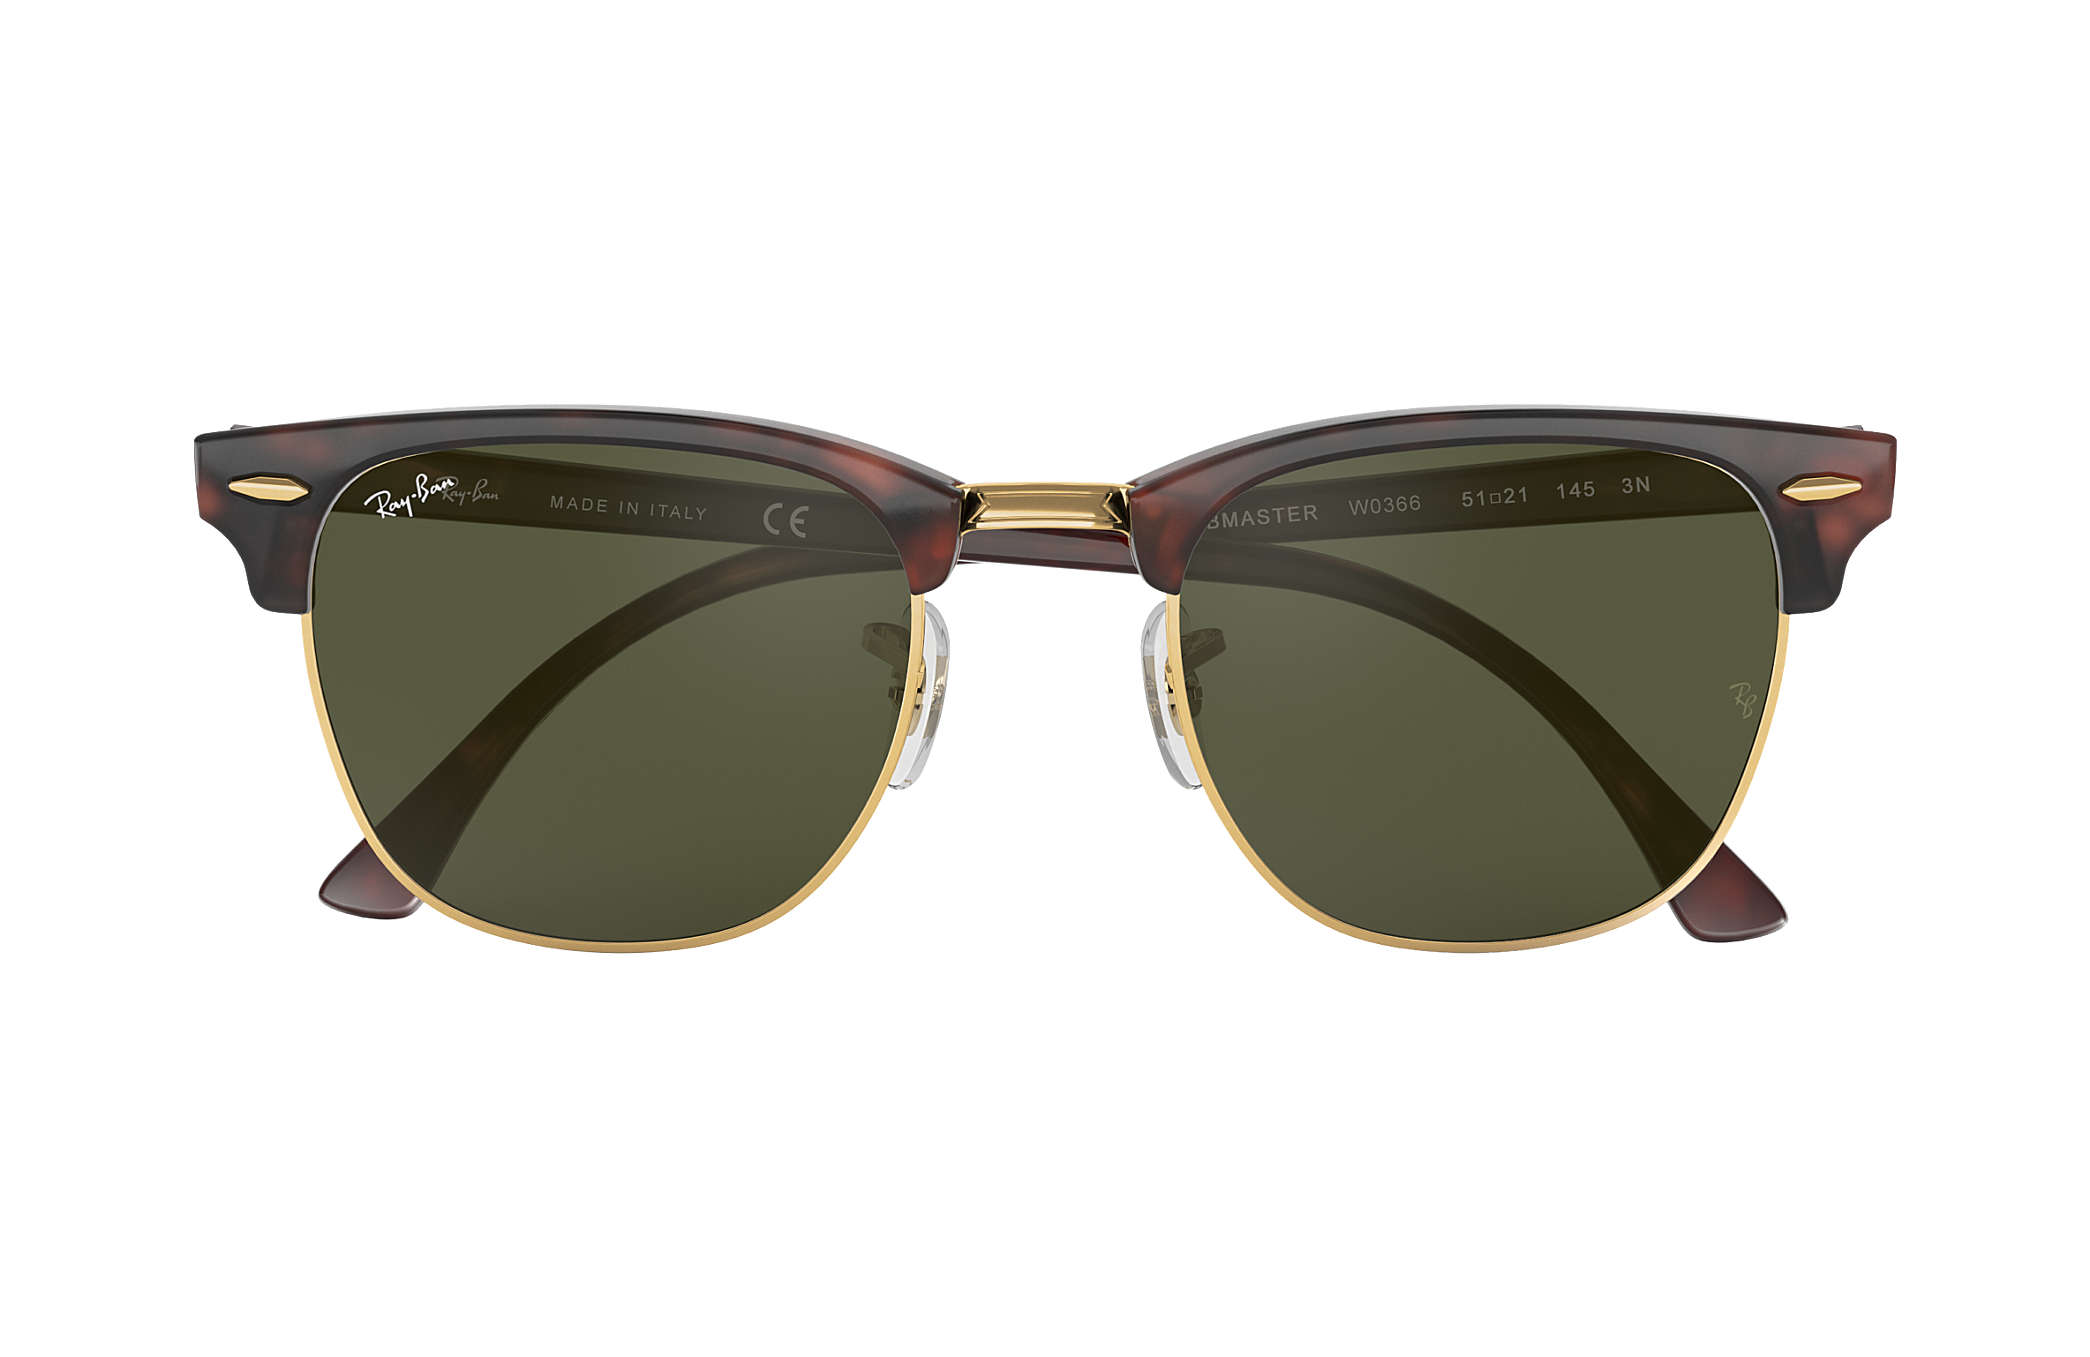 d6f6e9efa829c Ray-Ban Clubmaster Classic RB3016 Tortoise - Acetate - Green Lenses ...